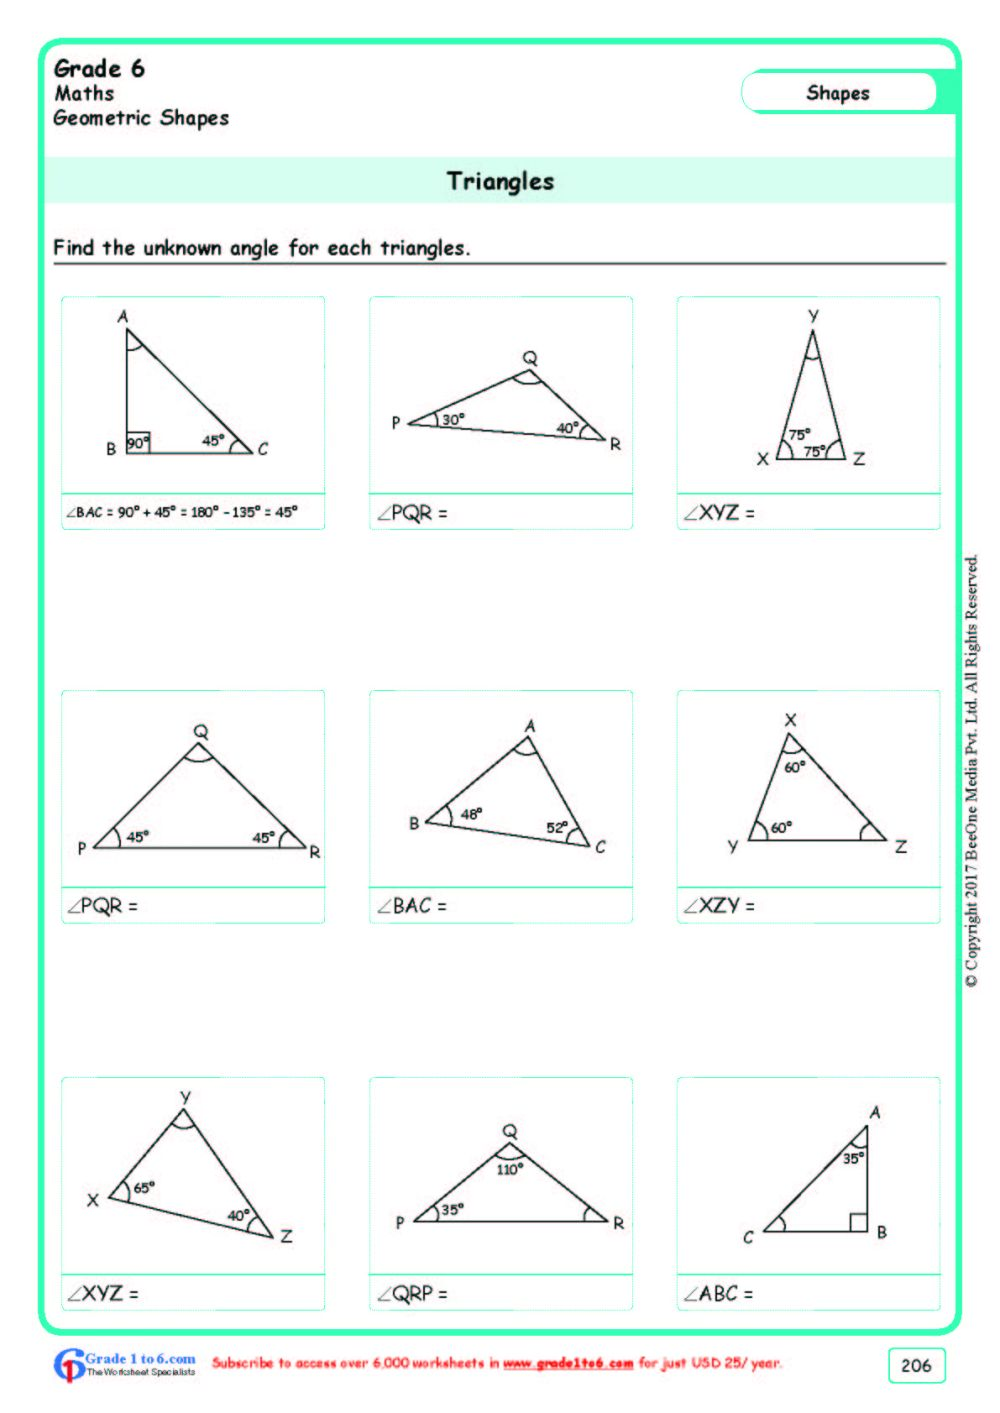 medium resolution of Angles of a Triangle Worksheets Grade 6 www.grade1to6.com